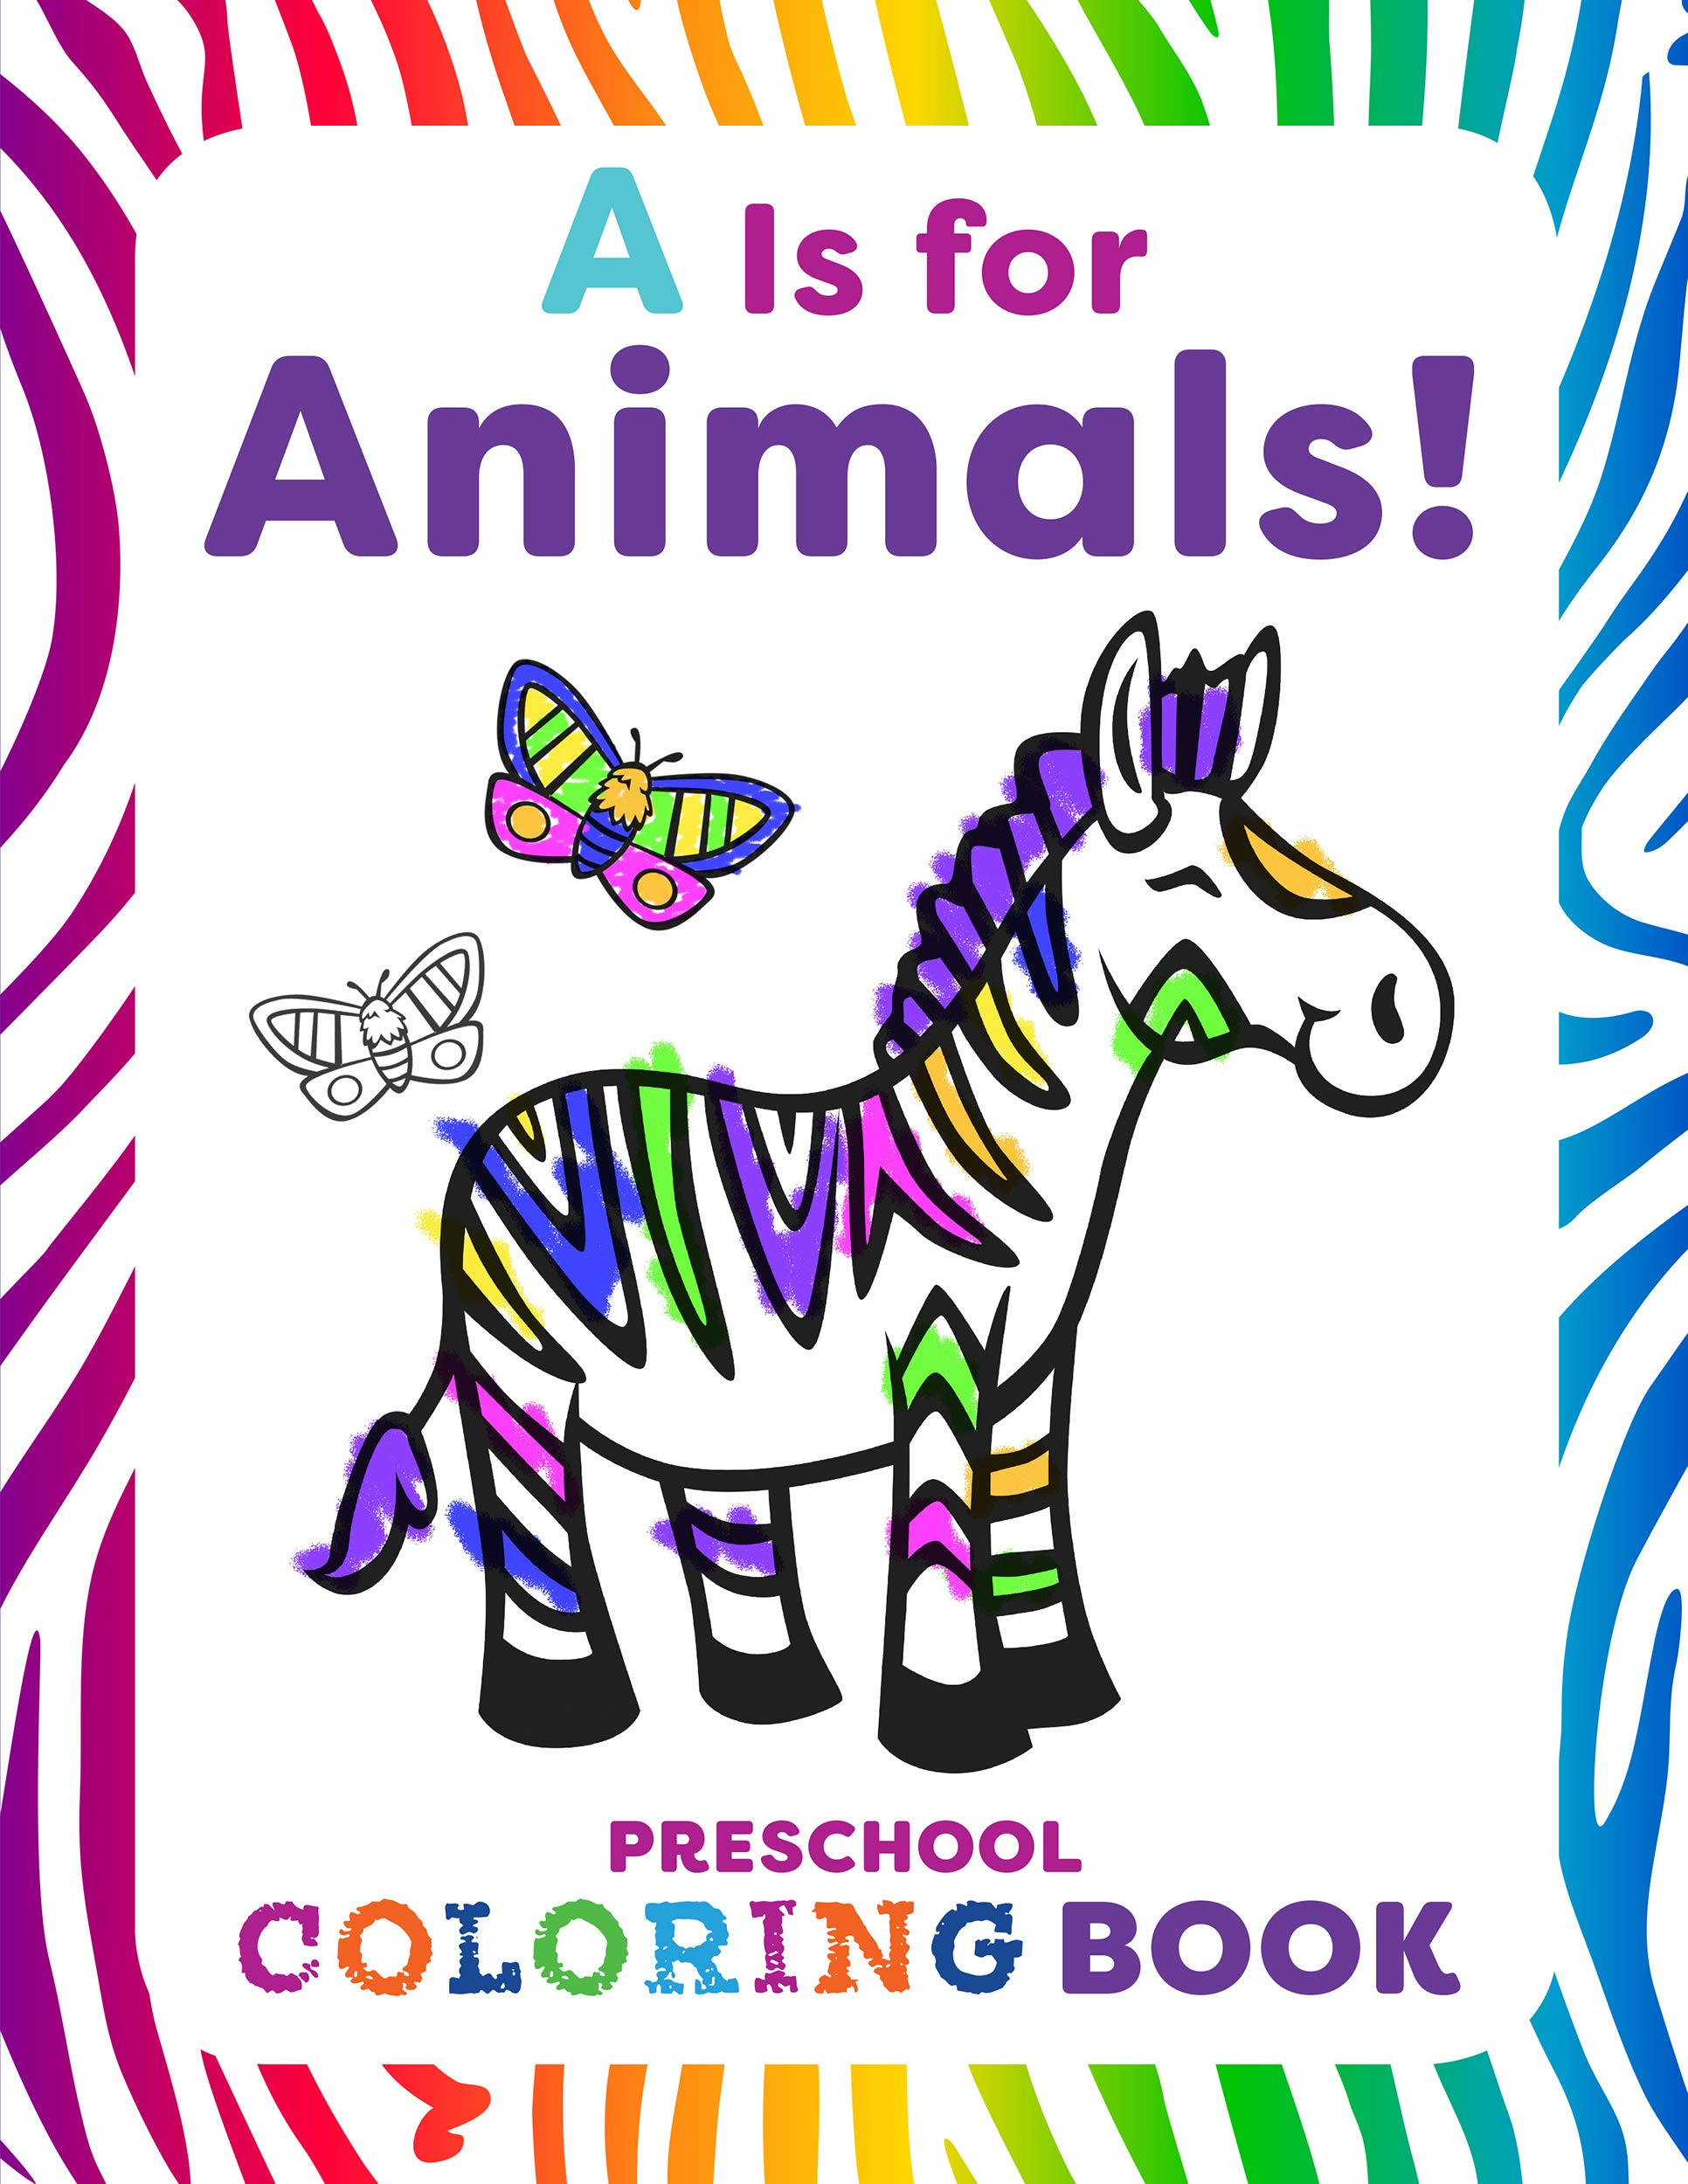 Animals Preschool Coloring Book product image